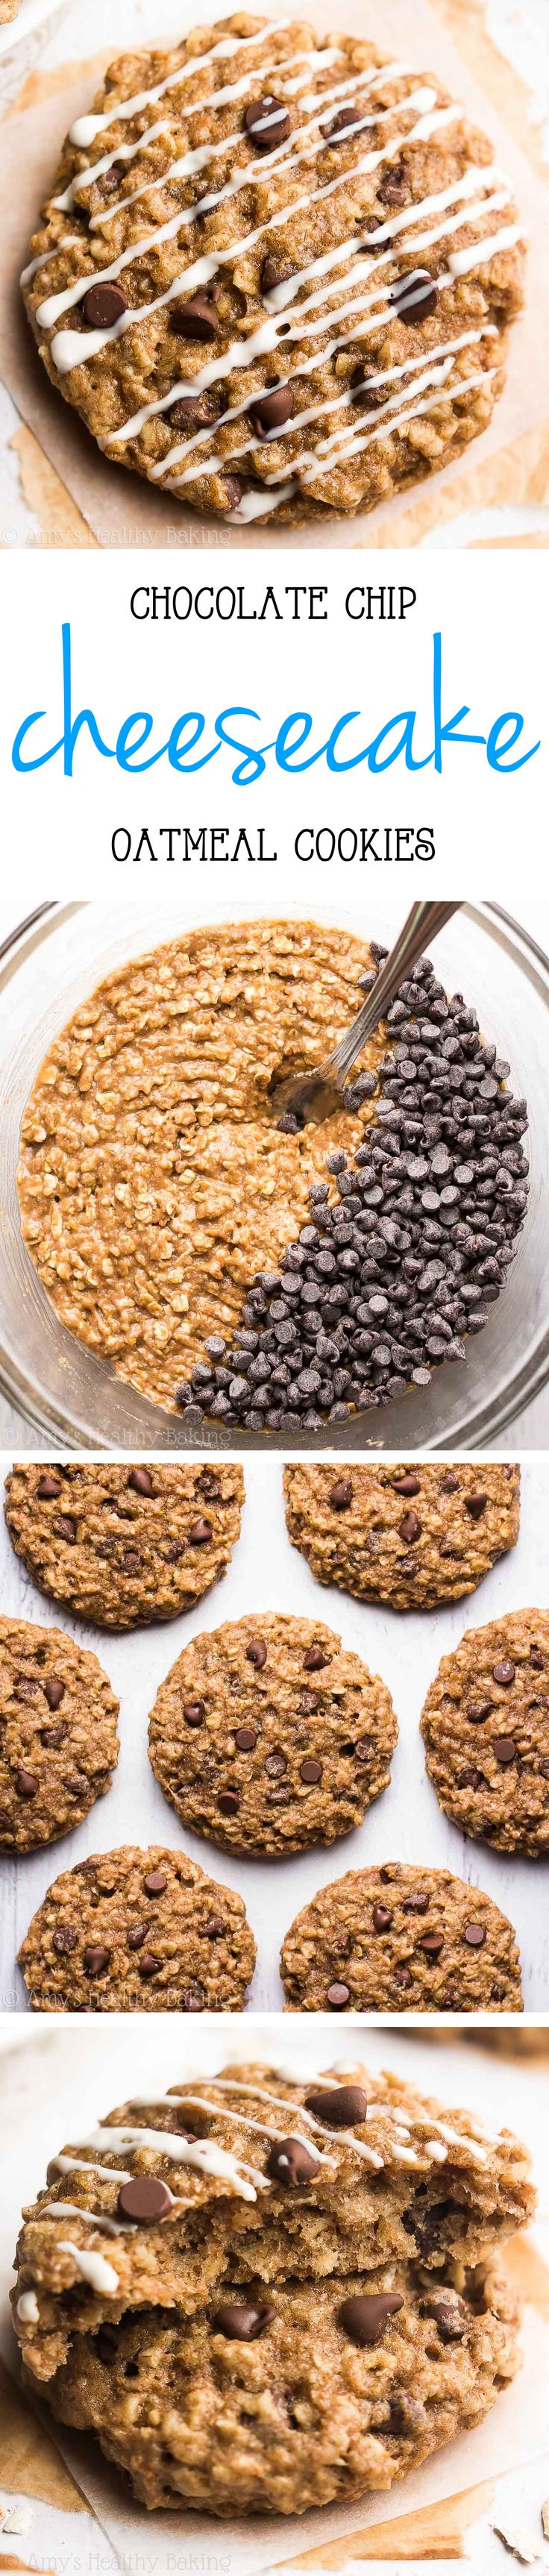 Skinny Chocolate Chip Cheesecake Oatmeal Cookies -- just 103 calories, but these cookies don't taste healthy at all! You'll never need another oatmeal cookie recipe again! (Chocolate Chip Cheesecake)